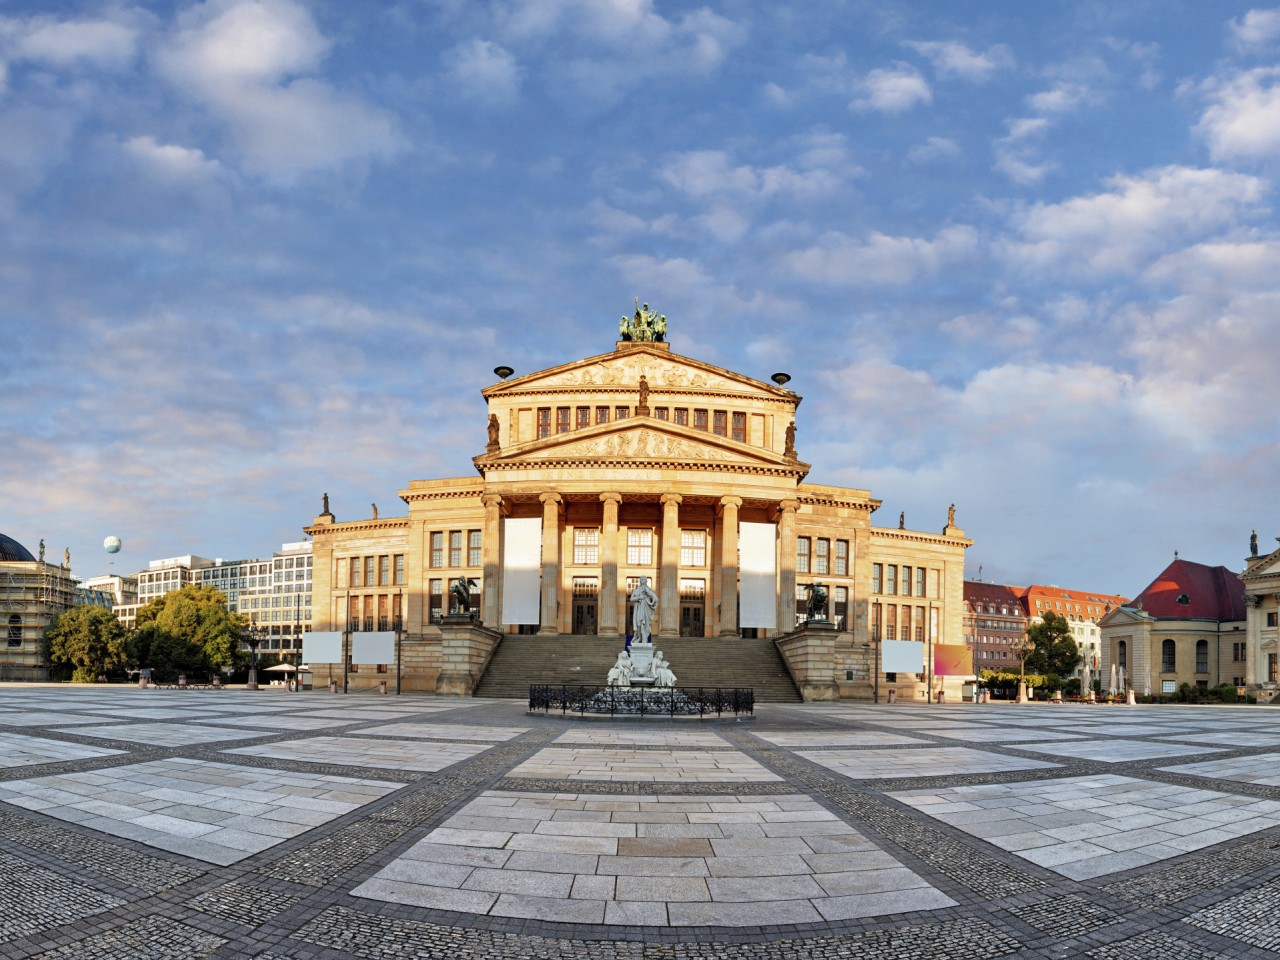 Historical Berlin & The Berlin Philharmonic: 06 March 2020